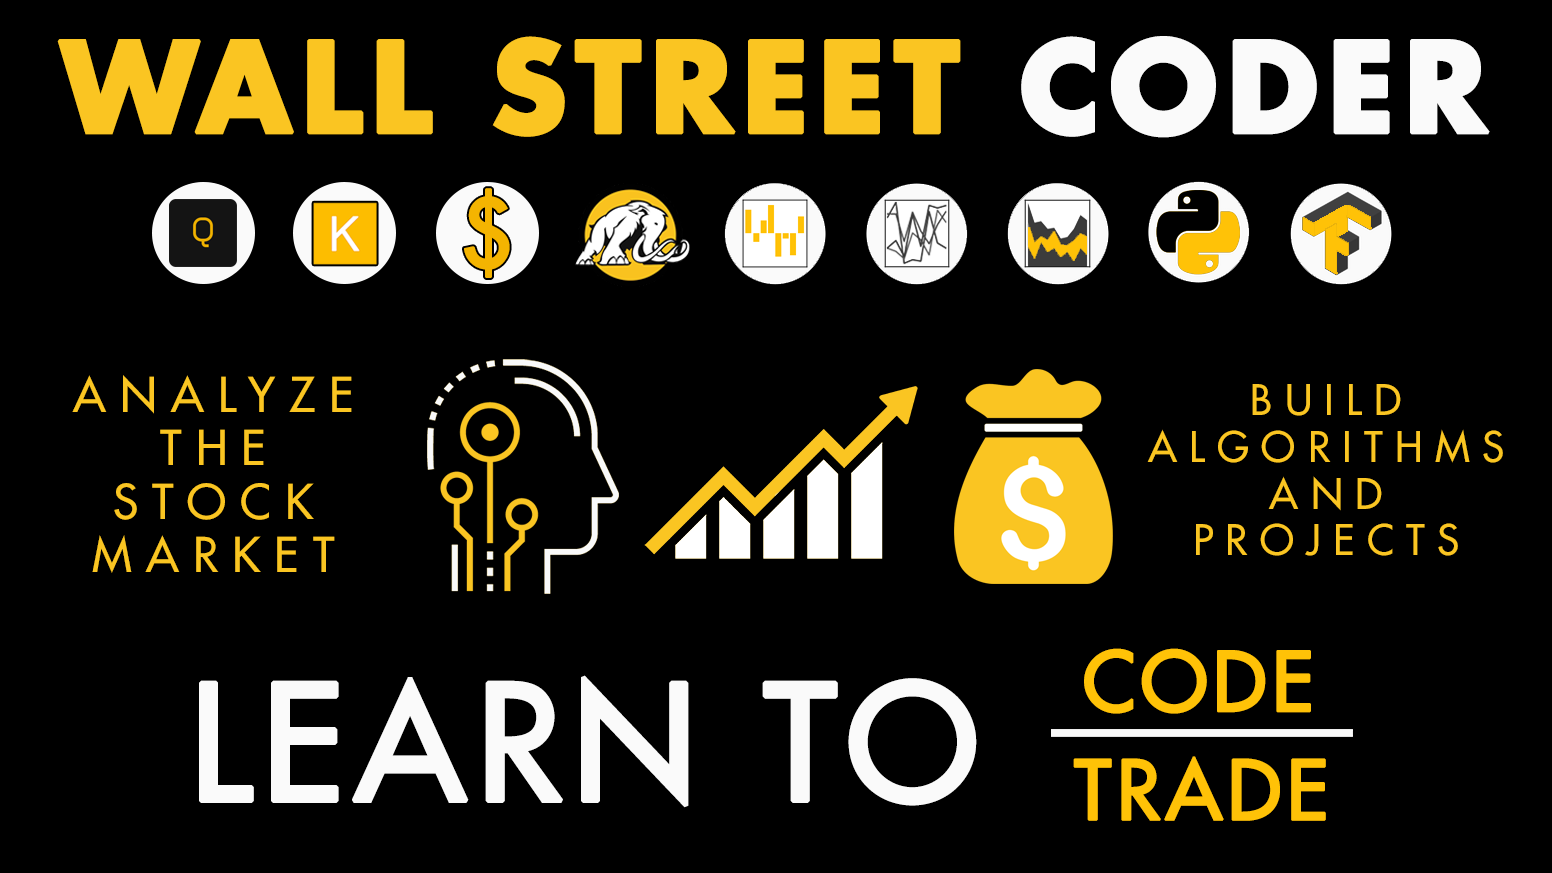 Learn complete Python trading and coding from scratch. Become an expert in data analytics and real-world financial analysis.